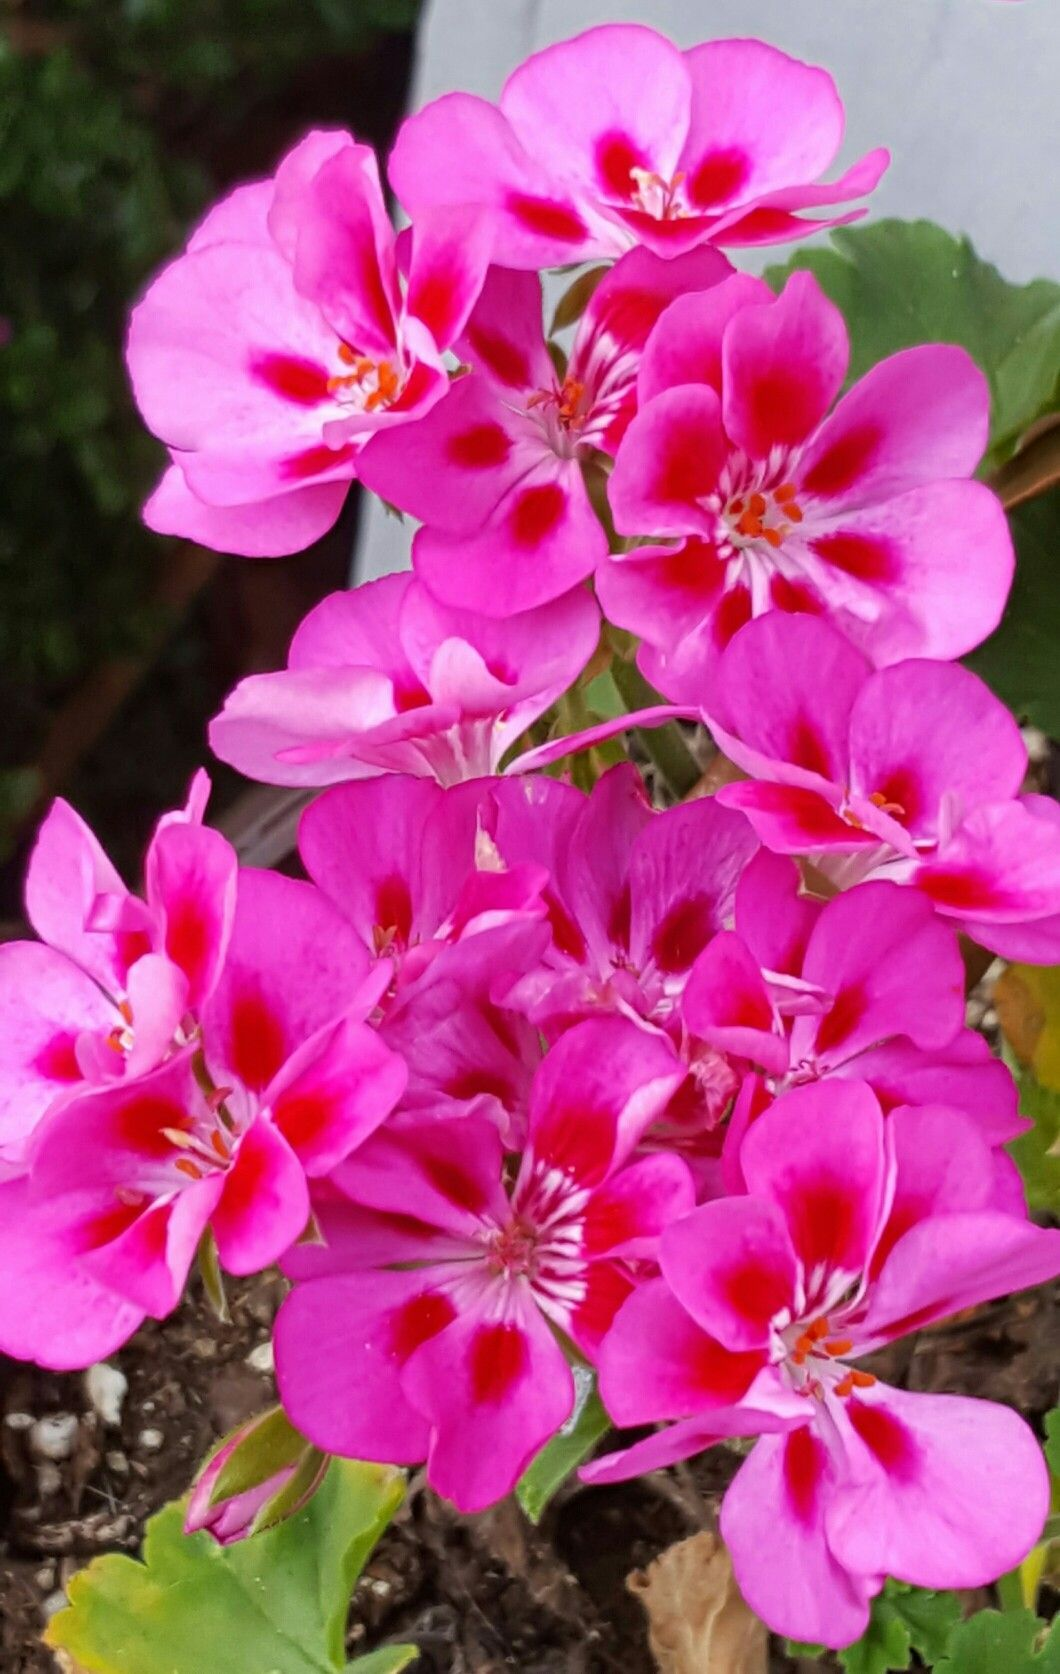 Lovely hot pink geranium flowers annuals flowers pinterest lovely hot pink geranium flowers annuals izmirmasajfo